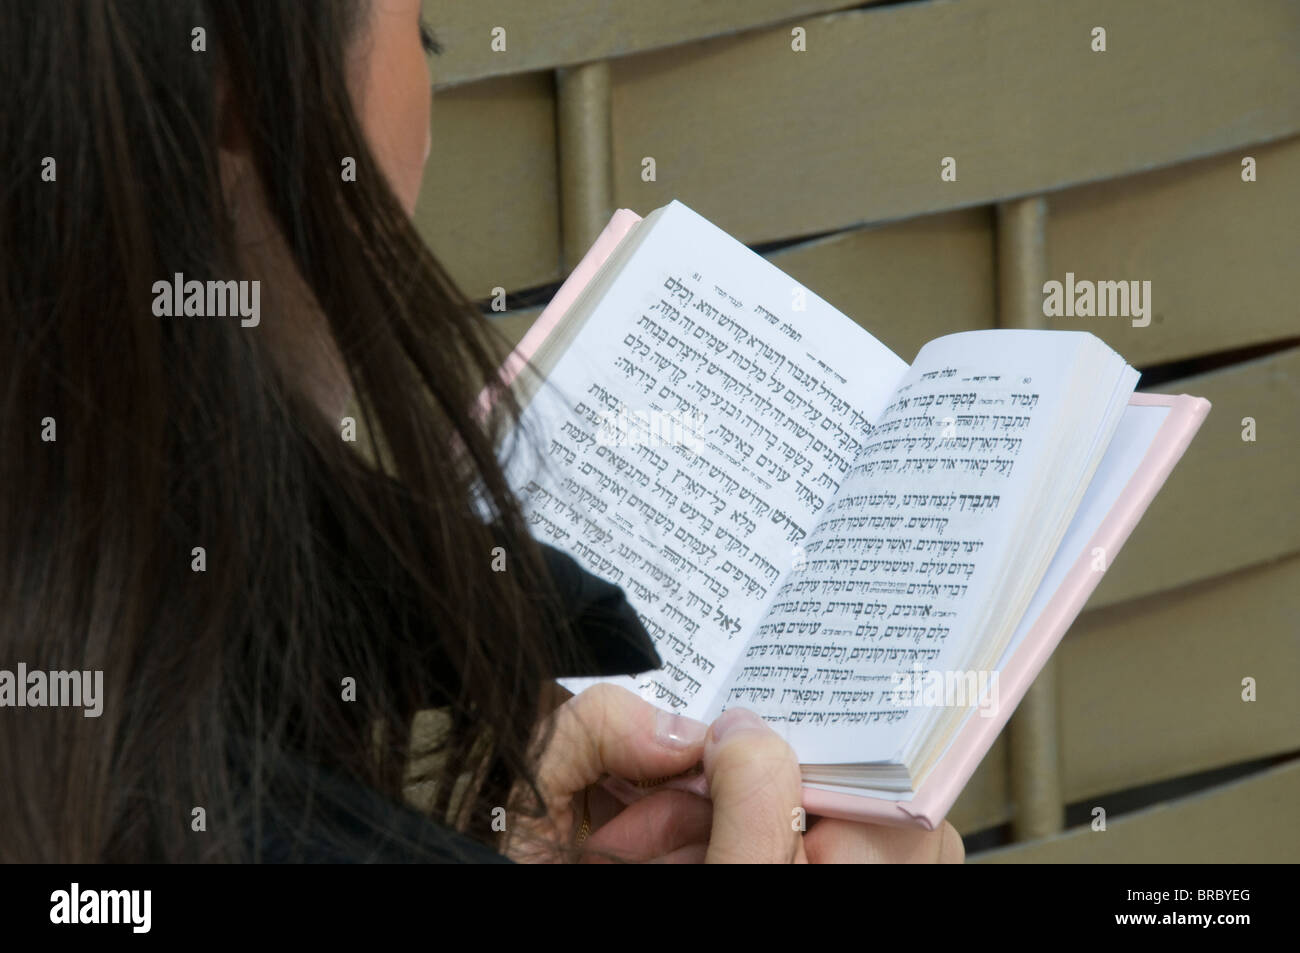 Close up of girl reading Jewish prayer book by the Wailing Wall. - Stock Image